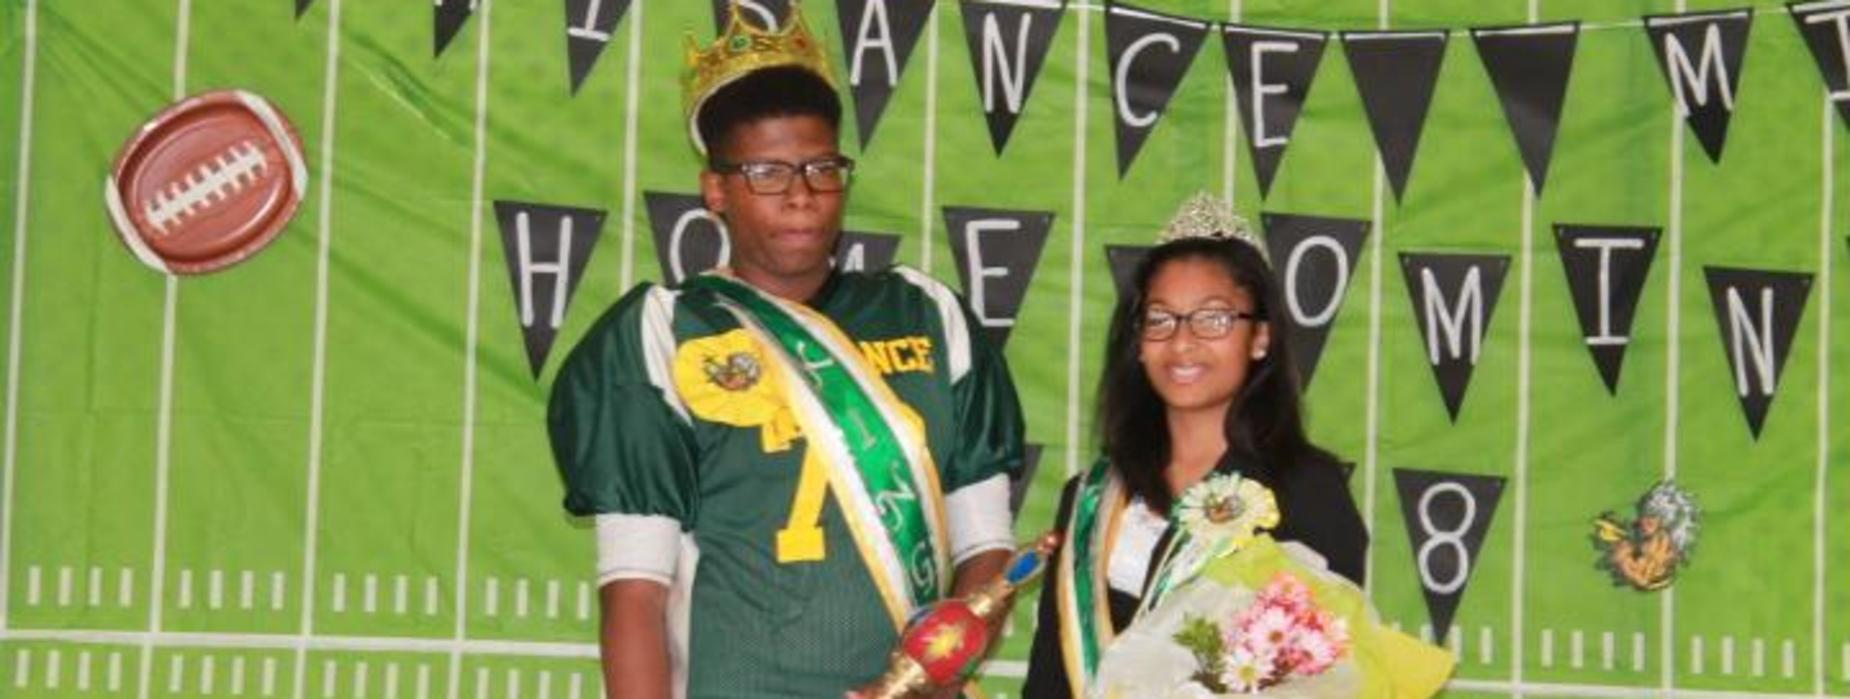 Plaisance Middle School Homecoming King & Queen Bryce May & Alalah Duckless !